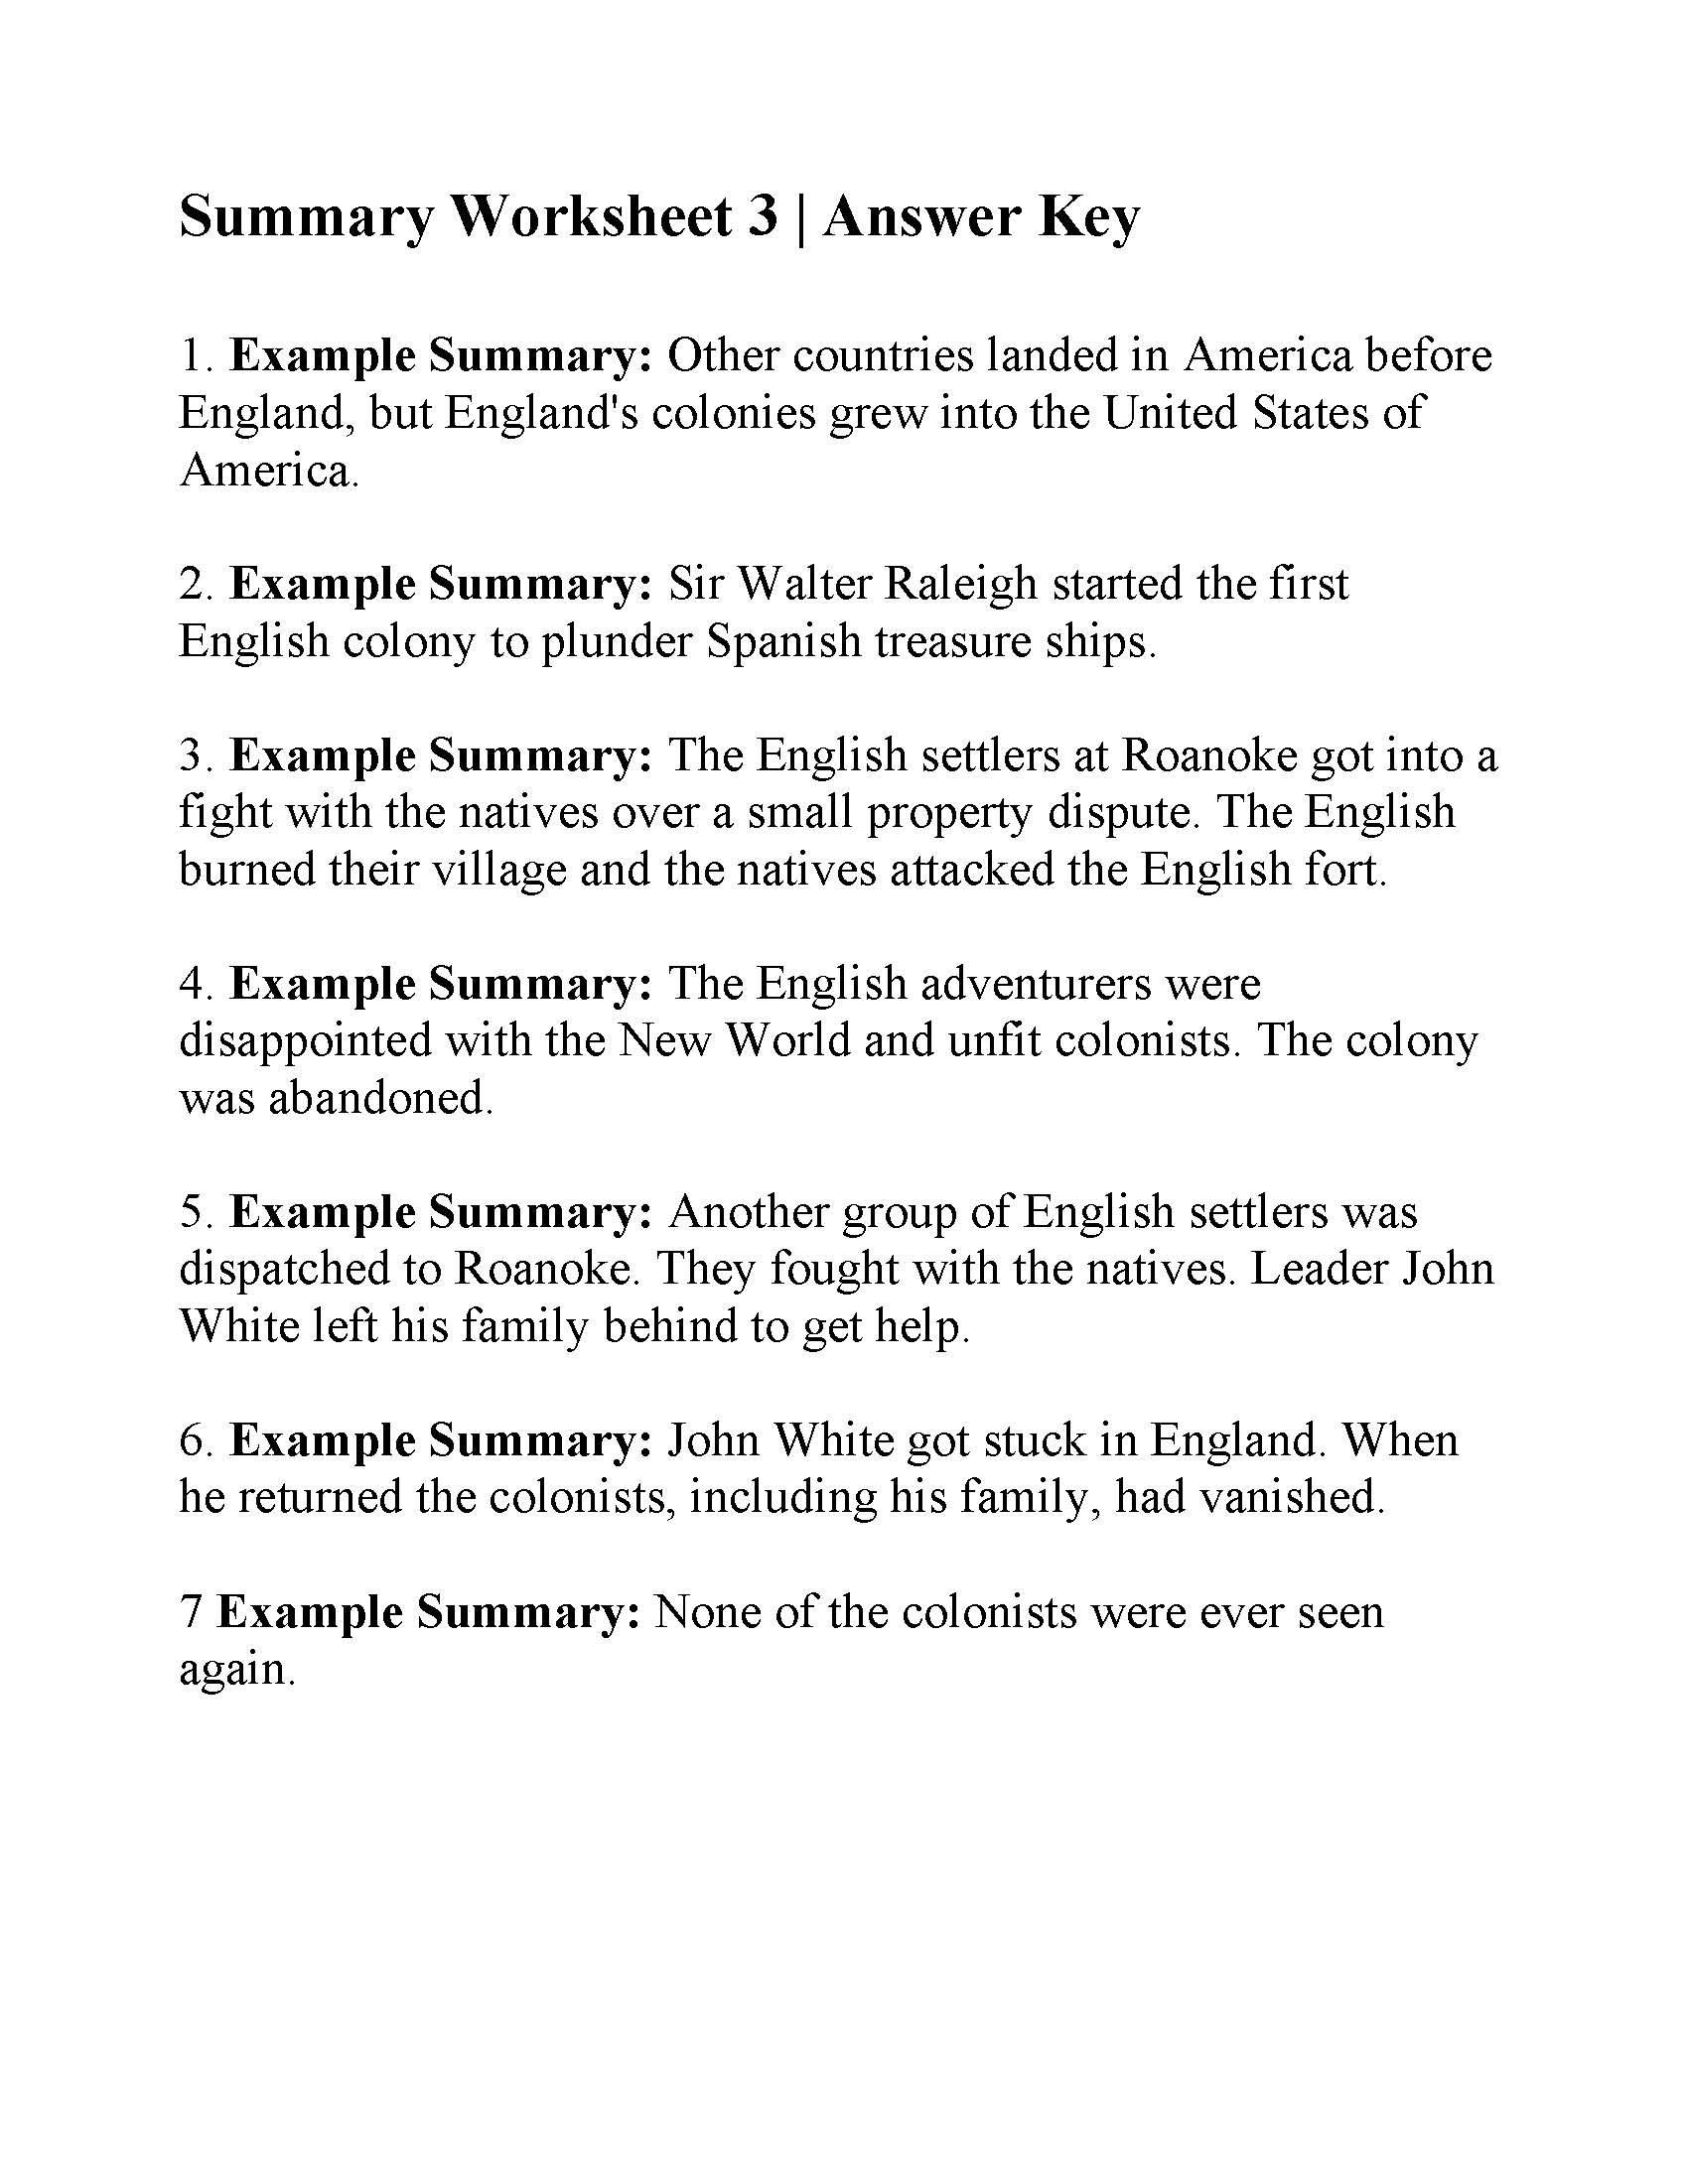 Summary Worksheets 5th Grade This is the Answer Key for the Summary Worksheet 3